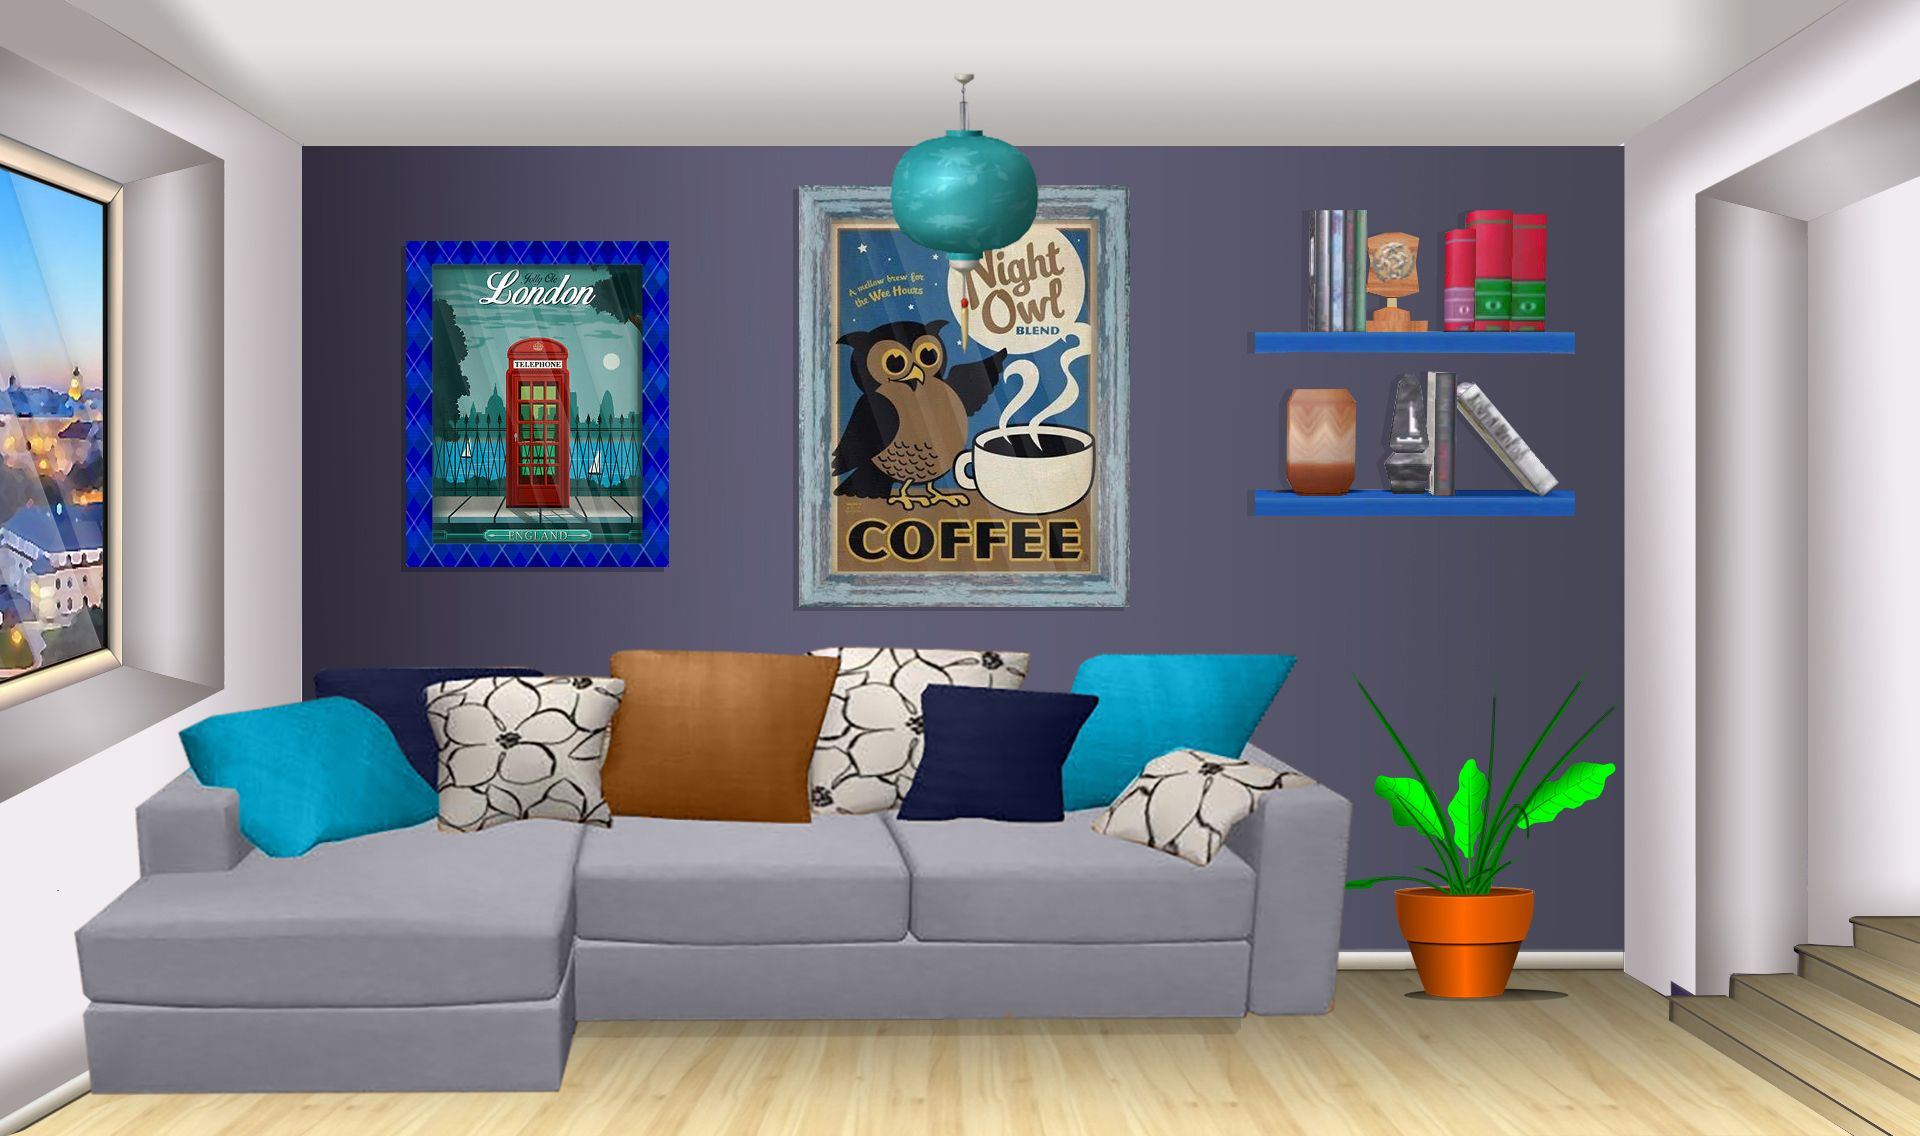 See more ideas about anime background, episode backgrounds, anime scenery. Int Apartment Blue Living Room Day Living Room Background Blue Living Room Apartment Living Room